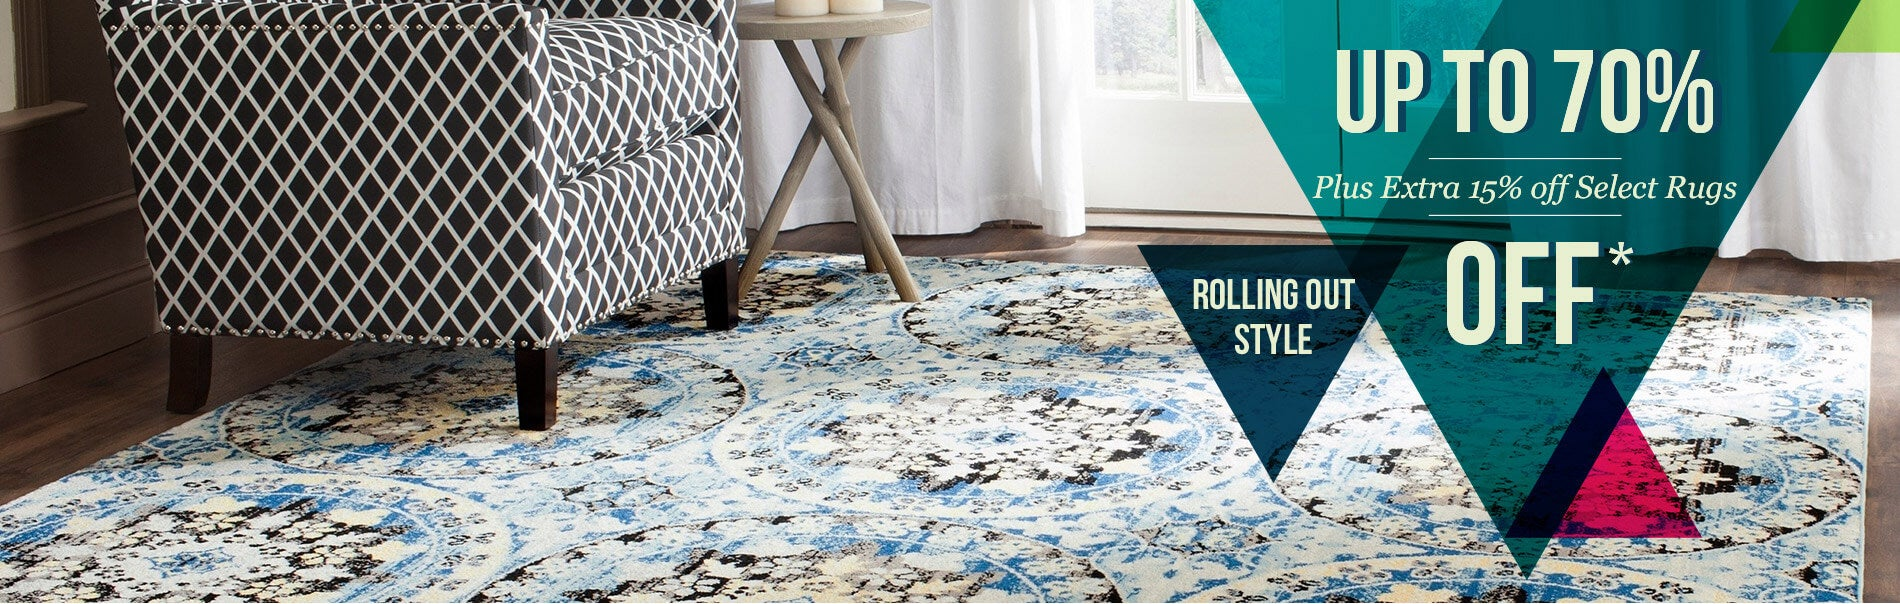 Up to 70% off + Extra 15% Off Select Rugs